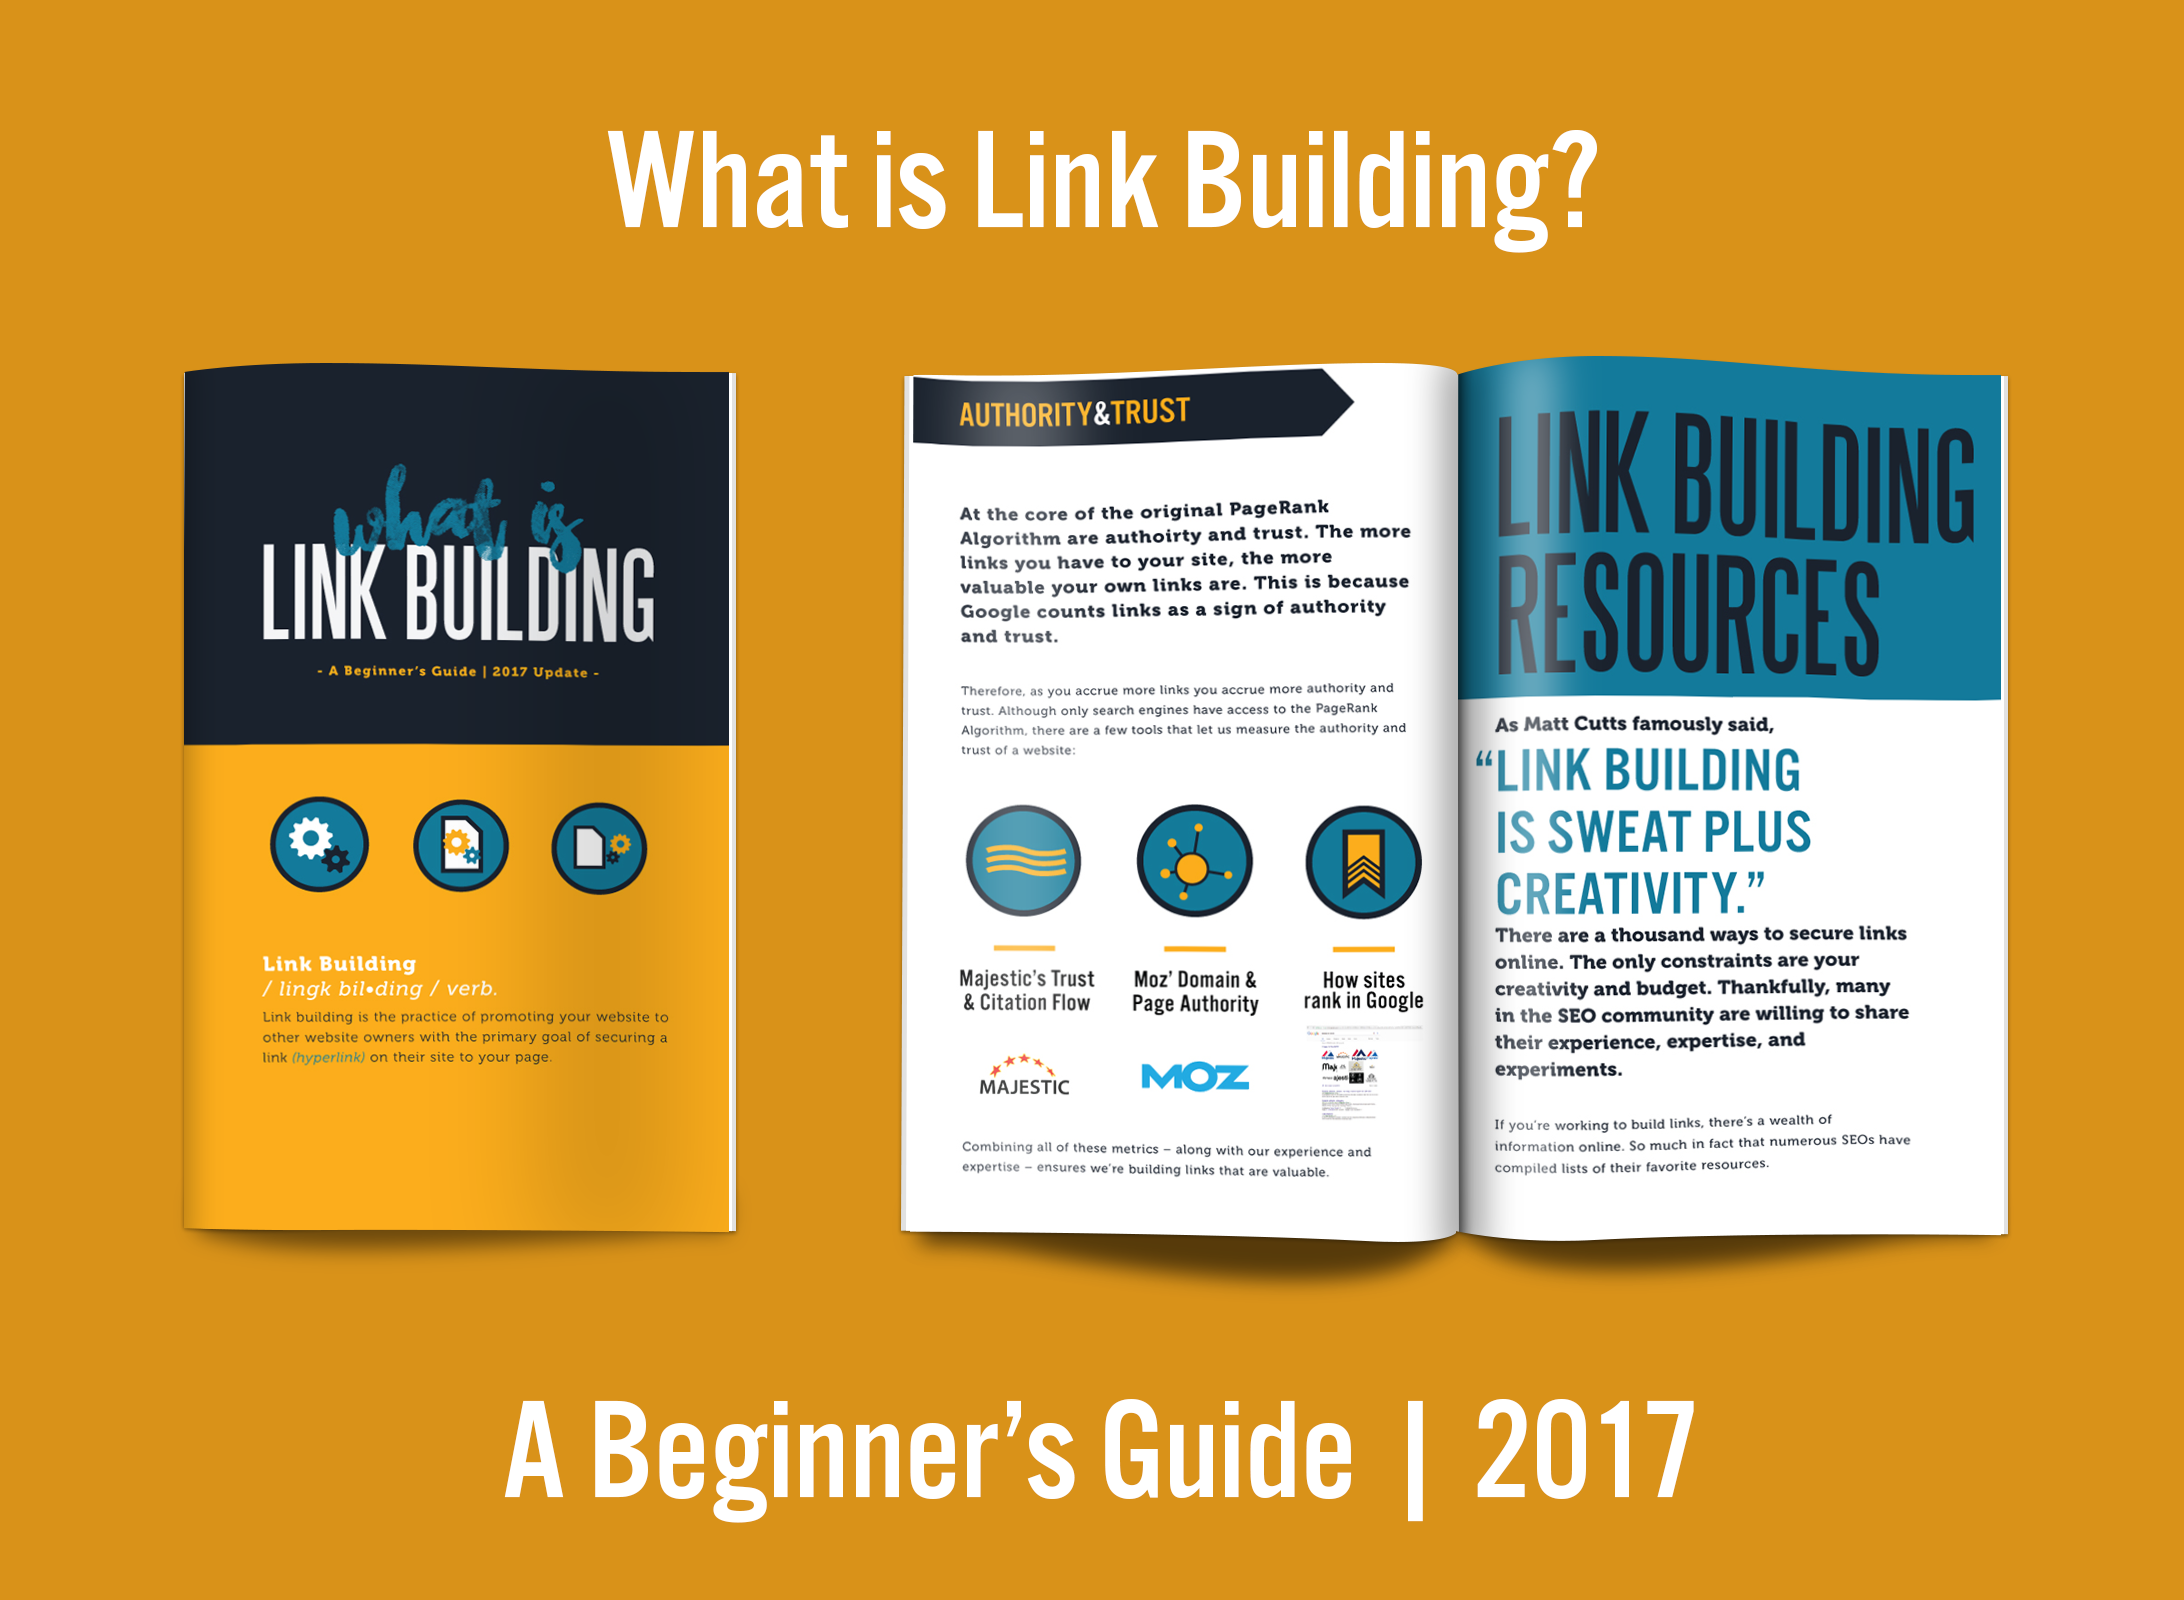 What is Link Building? A Beginner's Guide | 2017